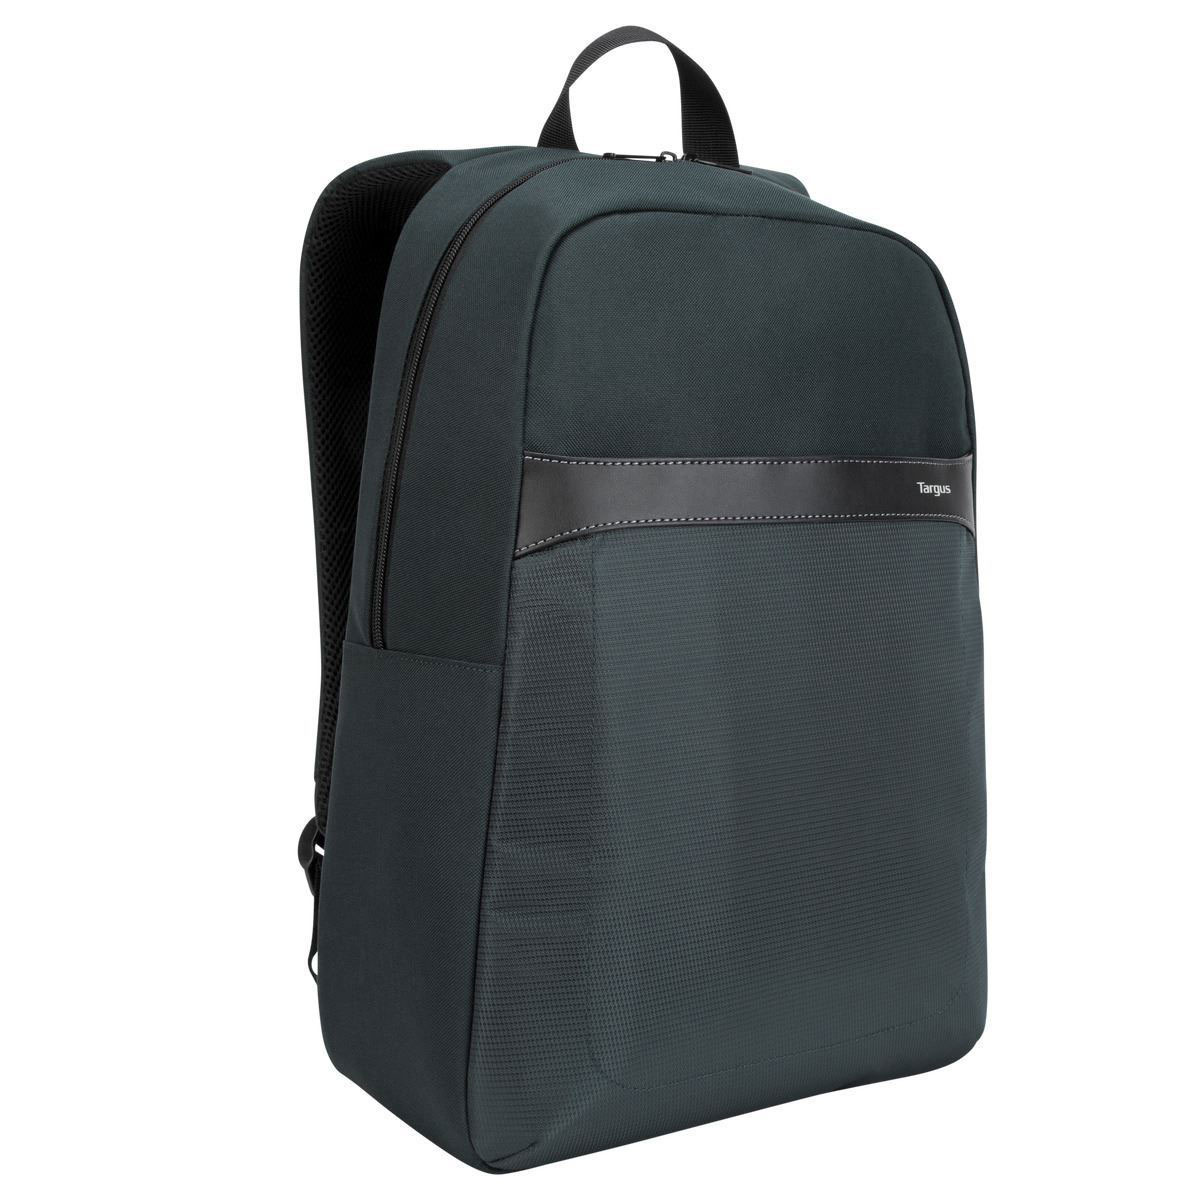 plus récent 4d338 11e0f TSB96001GL Geolite Essential Back Pack 15.6